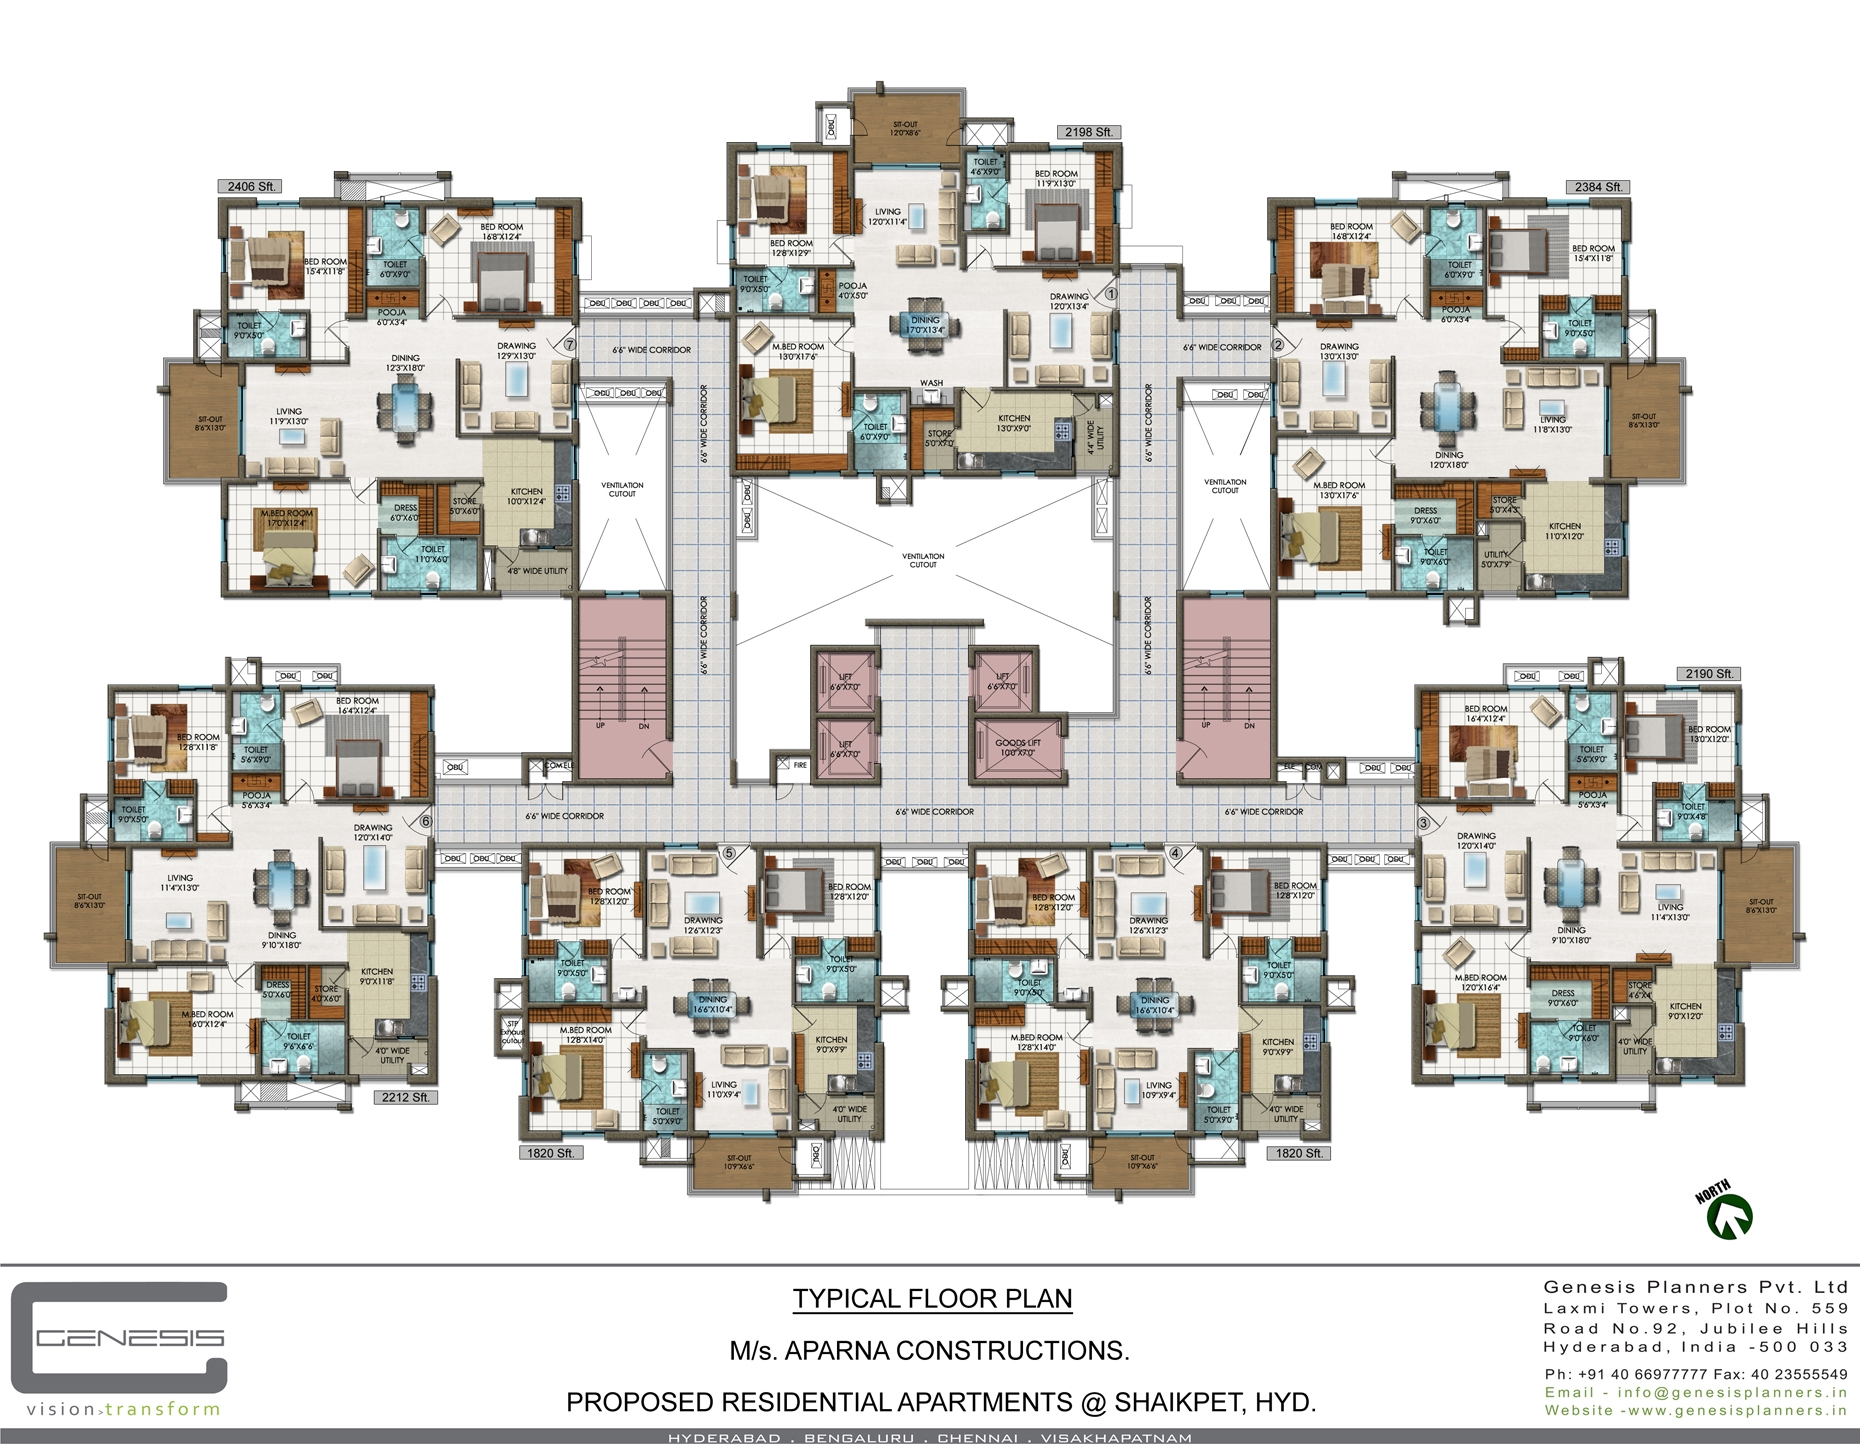 Aparna constructions aparna aura jubilee hills hyderabad for Apartment site plan